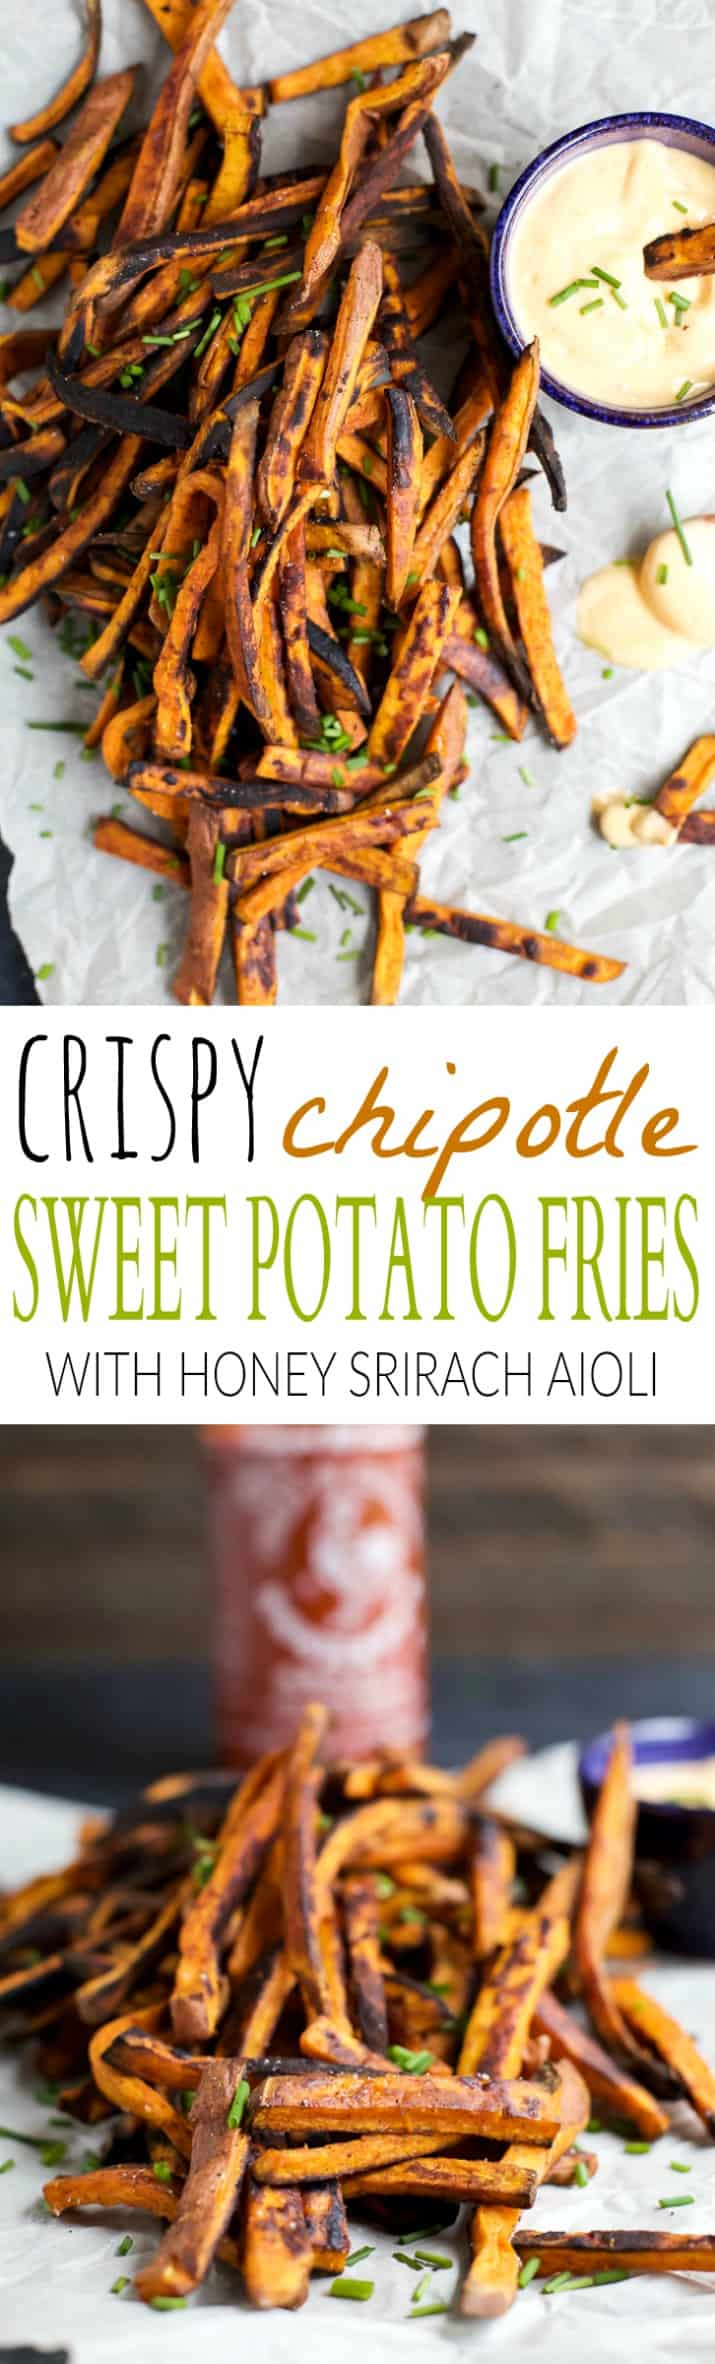 These babies are gonna be your new favorite healthy dinner side. Sweet potato fries paired with a Honey Sriracha Aioli you'll want to slather on everything!